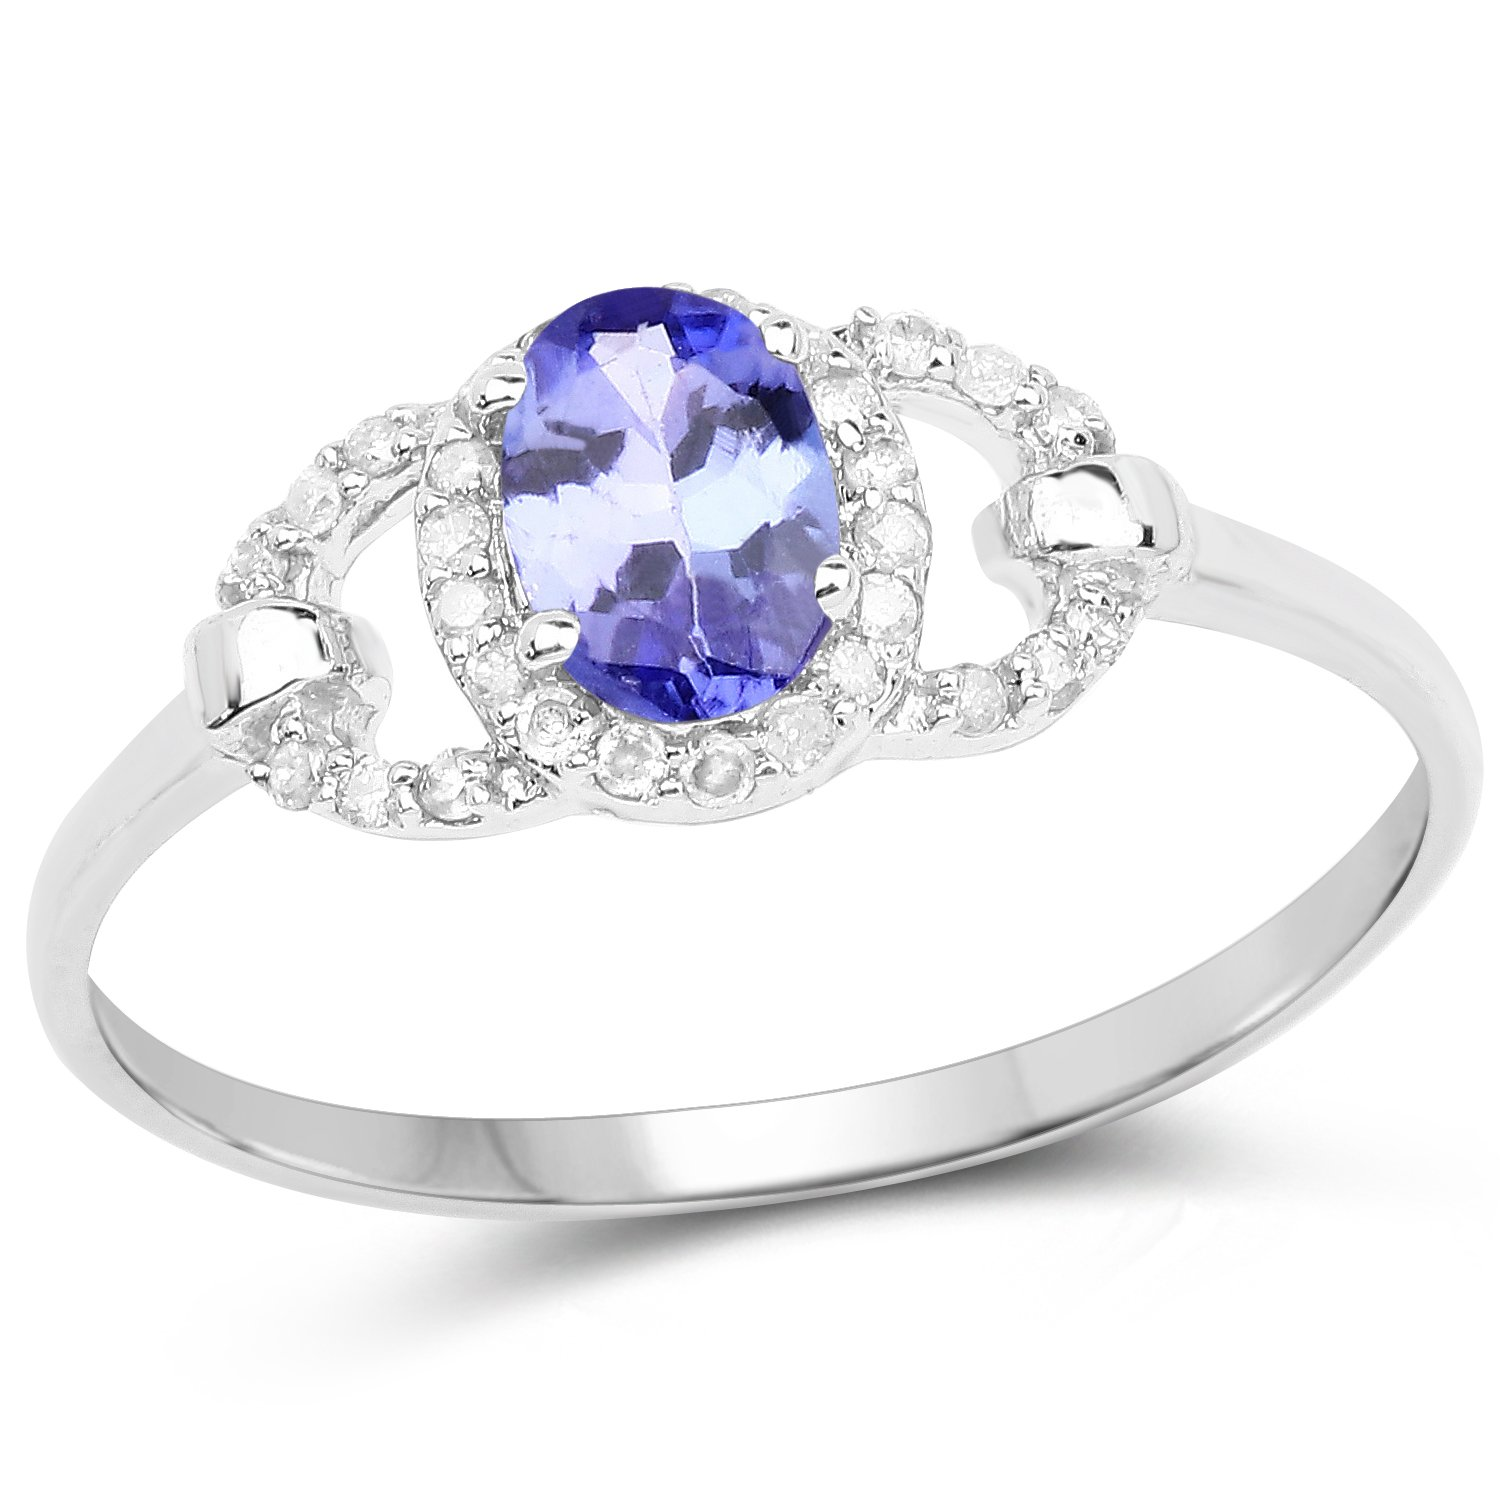 0.56 Carat Genuine Tanzanite and White Diamond 10K White Gold Ring